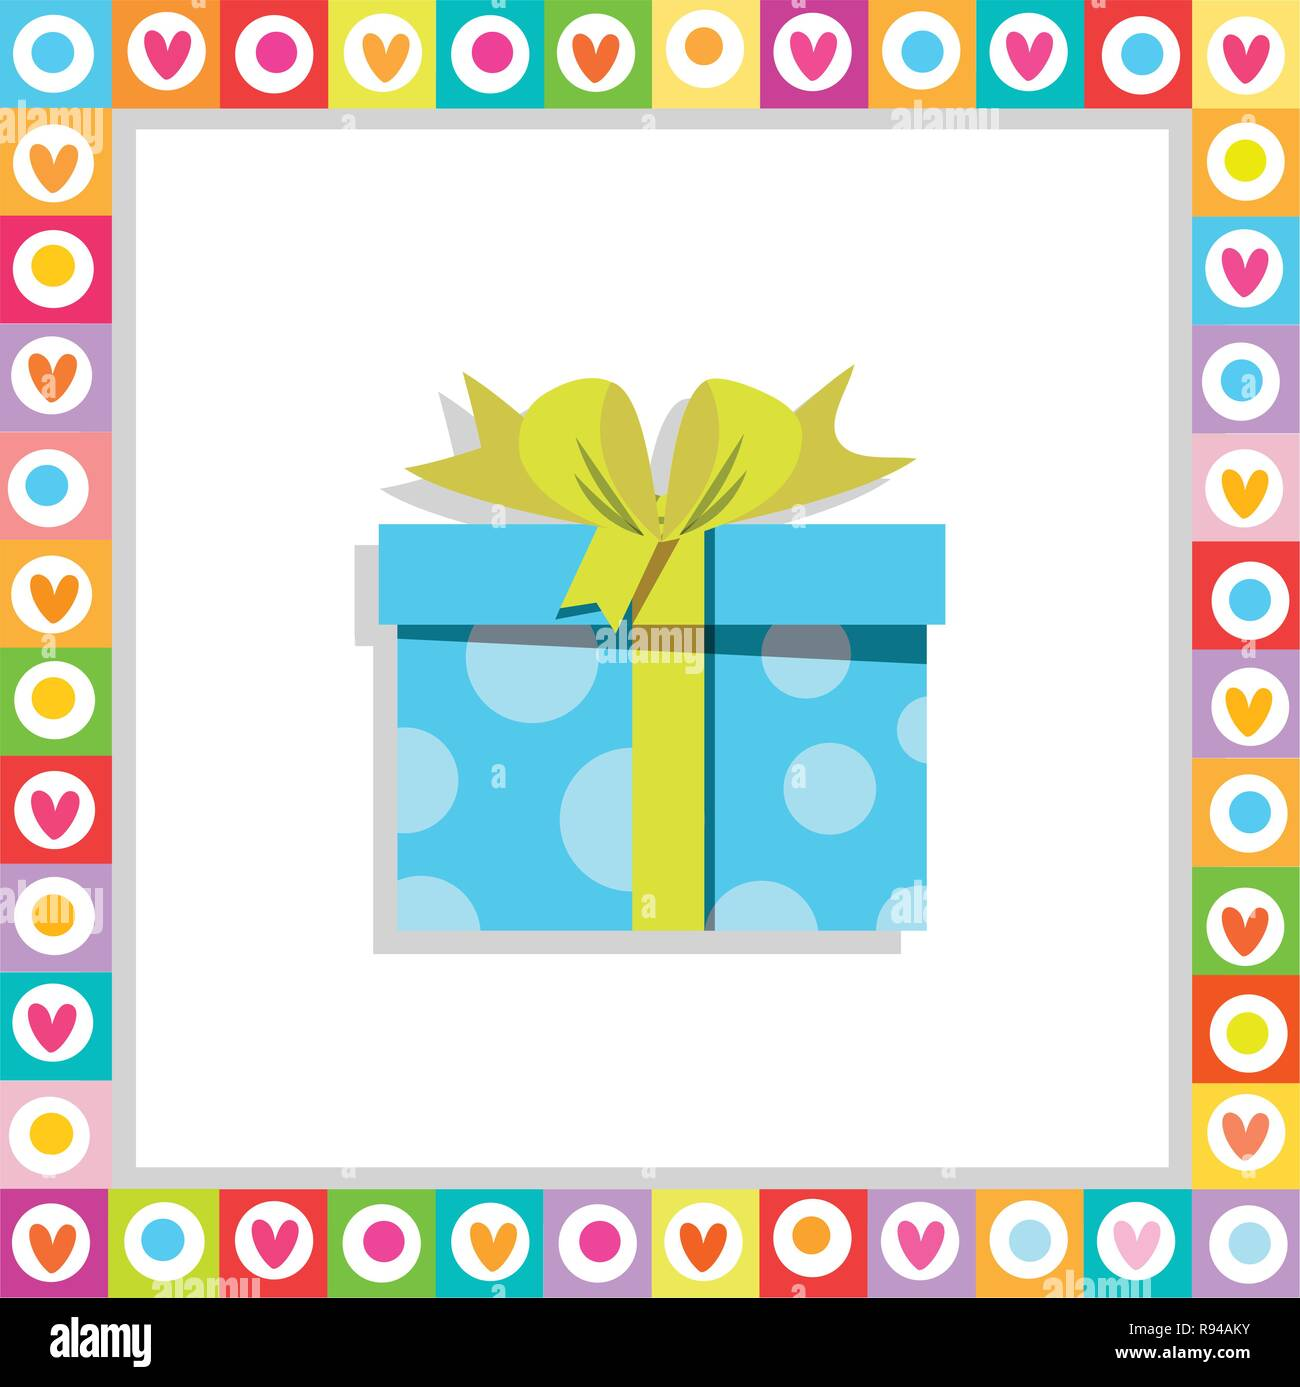 Vector illustration of cute cartoon blue gift box wrapped with festive bow framed with heart frame isolated. Present icon, anniversary logo, wedding,  - Stock Image